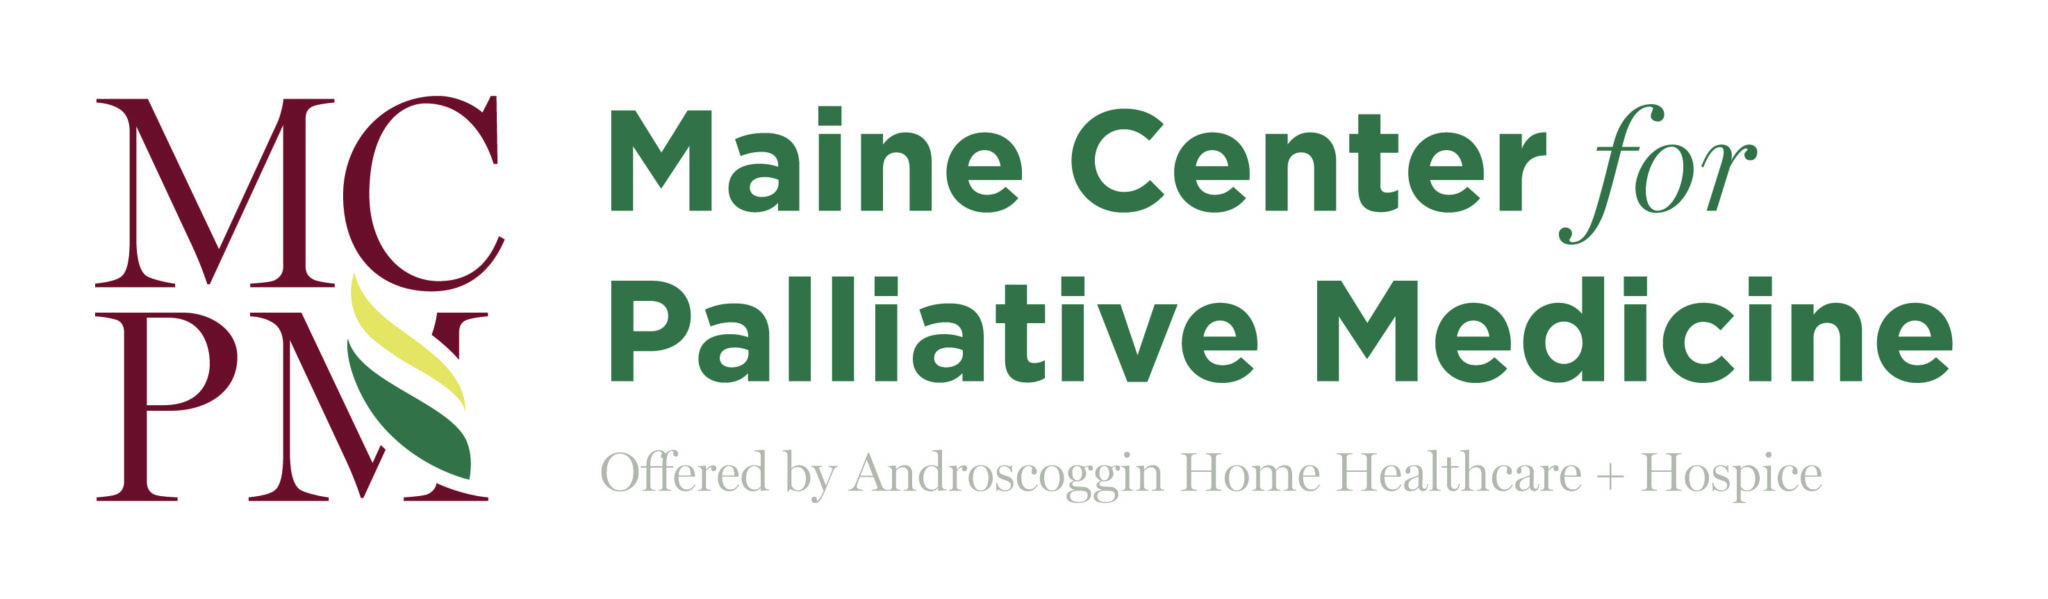 Maine Center for Palliative Medicine Logo